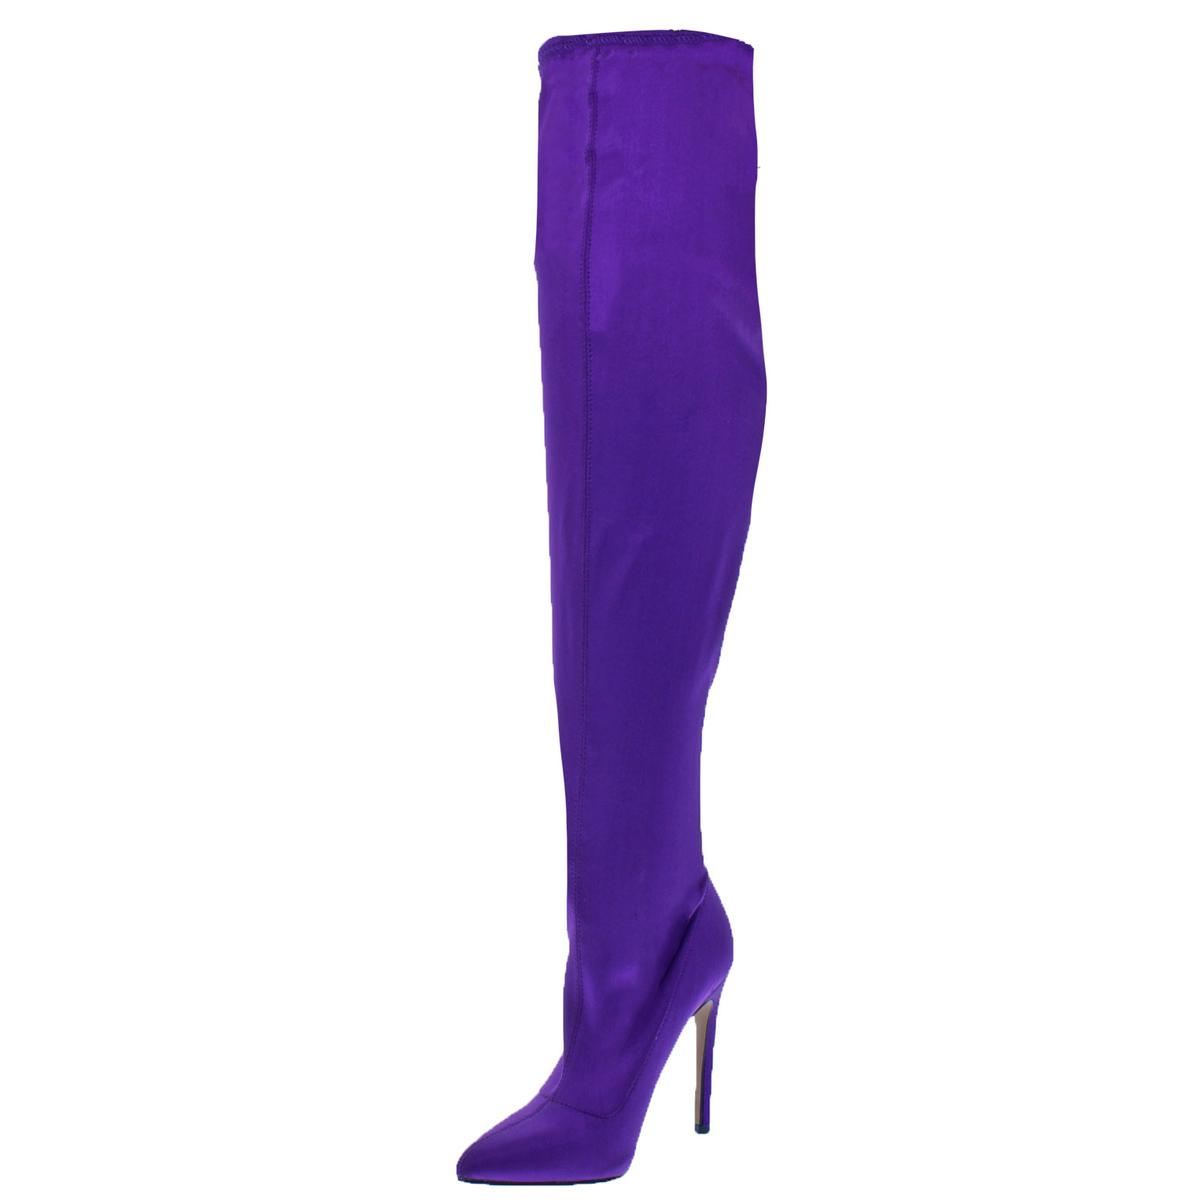 4e1bd865b8d Details about Steve Madden Womens Slammin Purple Over-The-Knee Boots 8.5  Medium (B